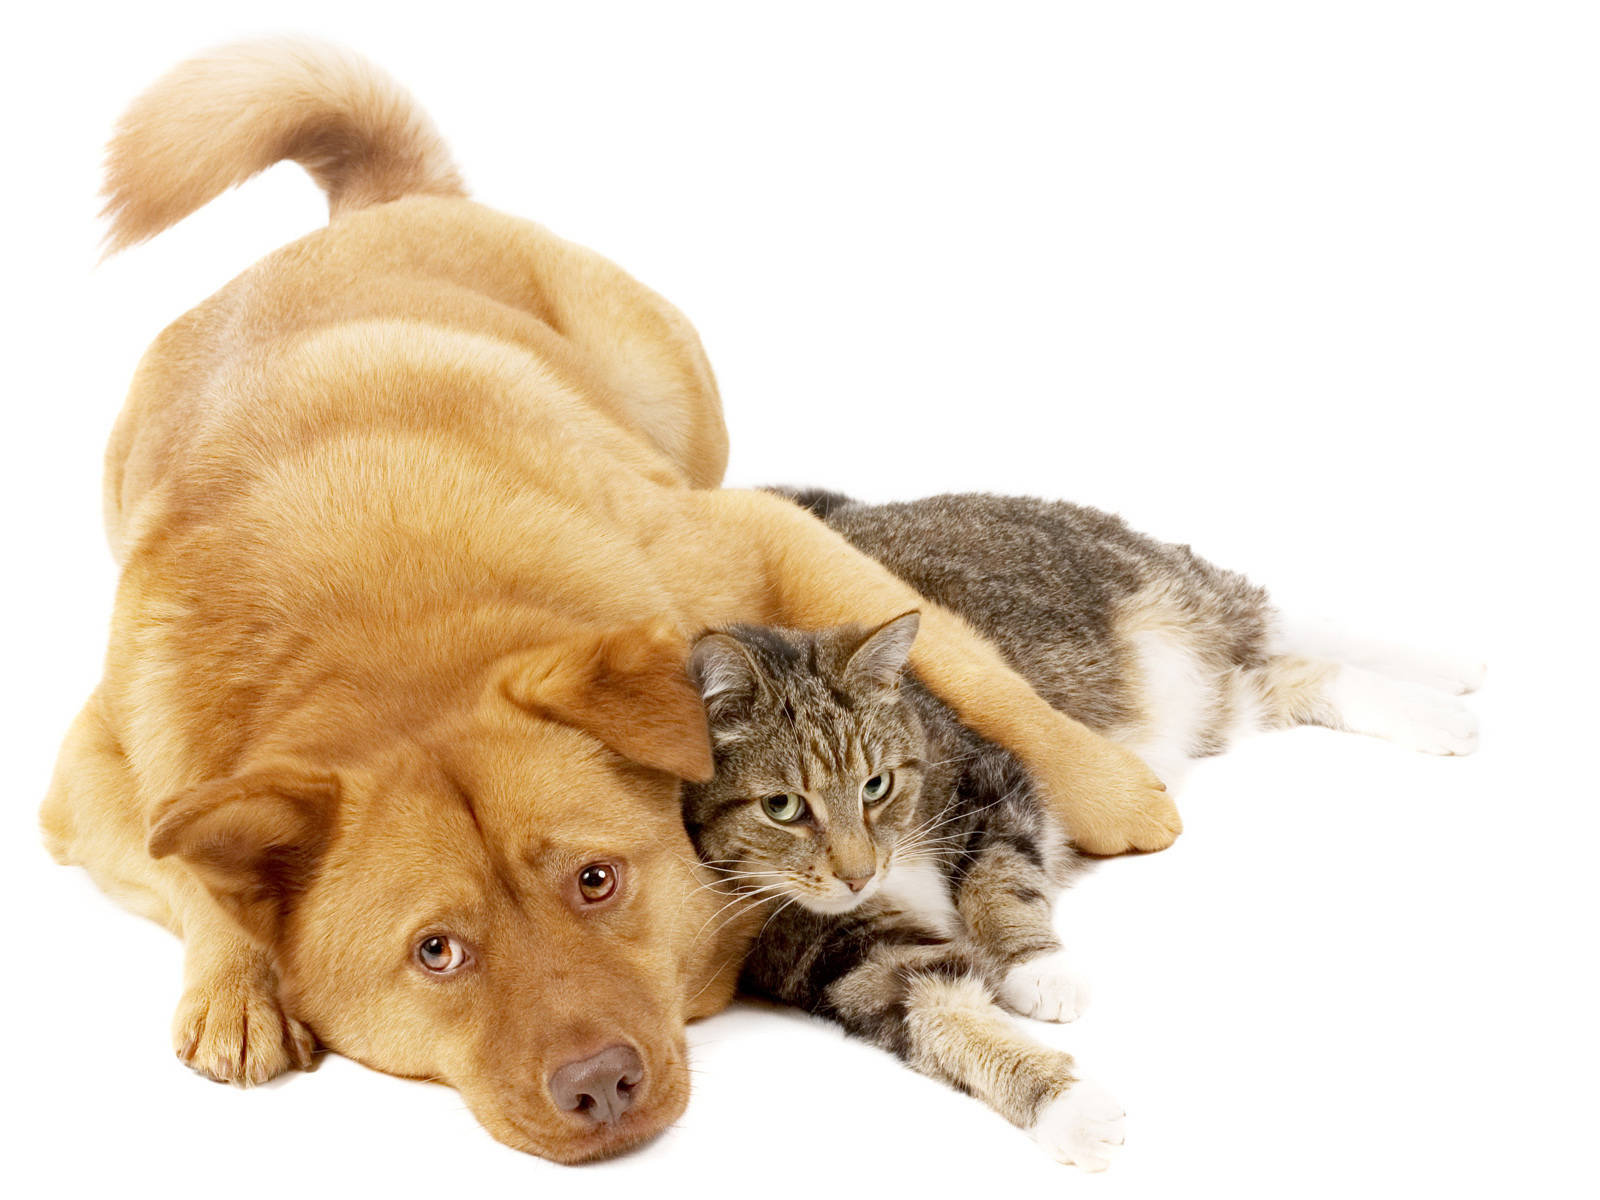 Pets and Essential oils - how to use them respectfully with pets